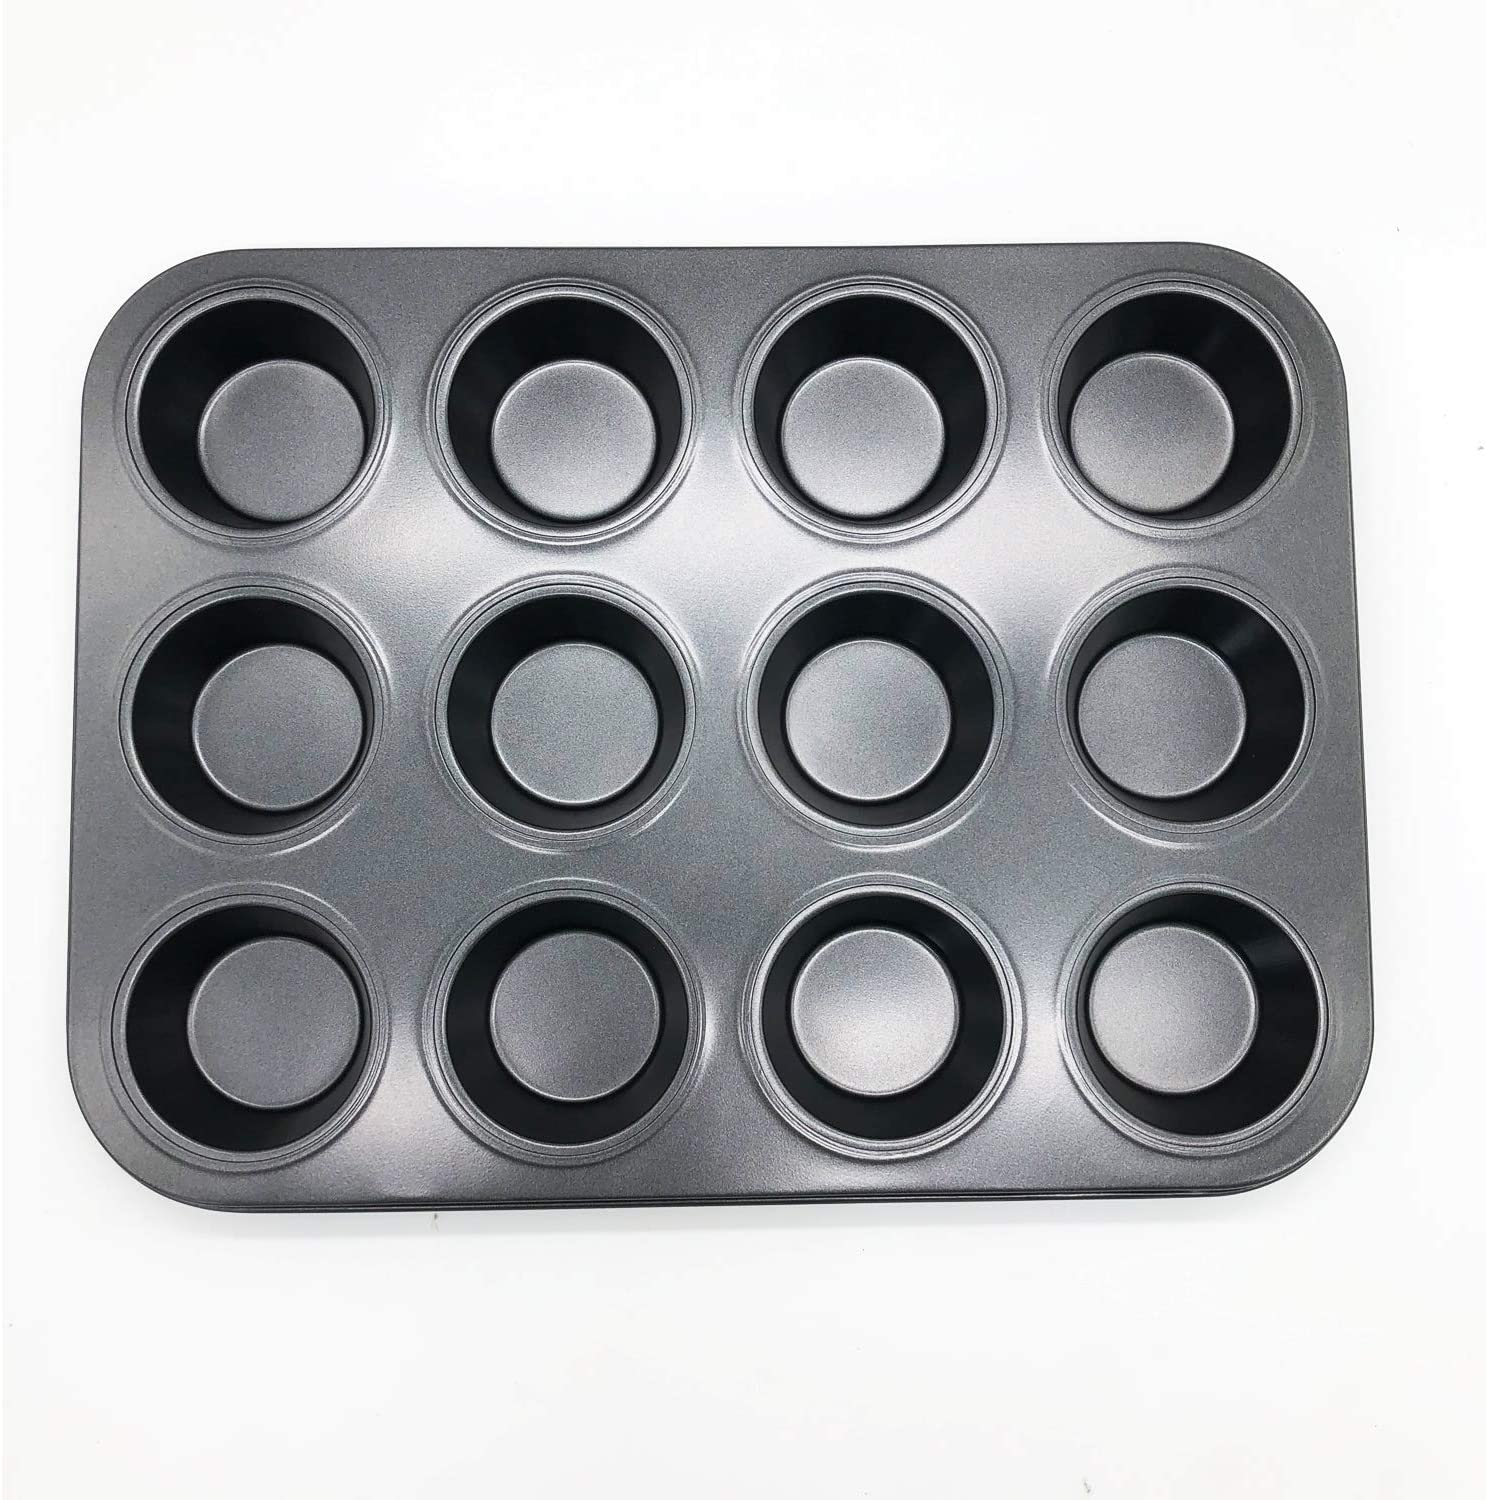 Waytiffer 12-Cups Non-stick Cake Mold Cake Pan Carbon Steel Baking Round Cake Mould Teflon Coating Dish Ovenware Muffin Standard Tray (1)